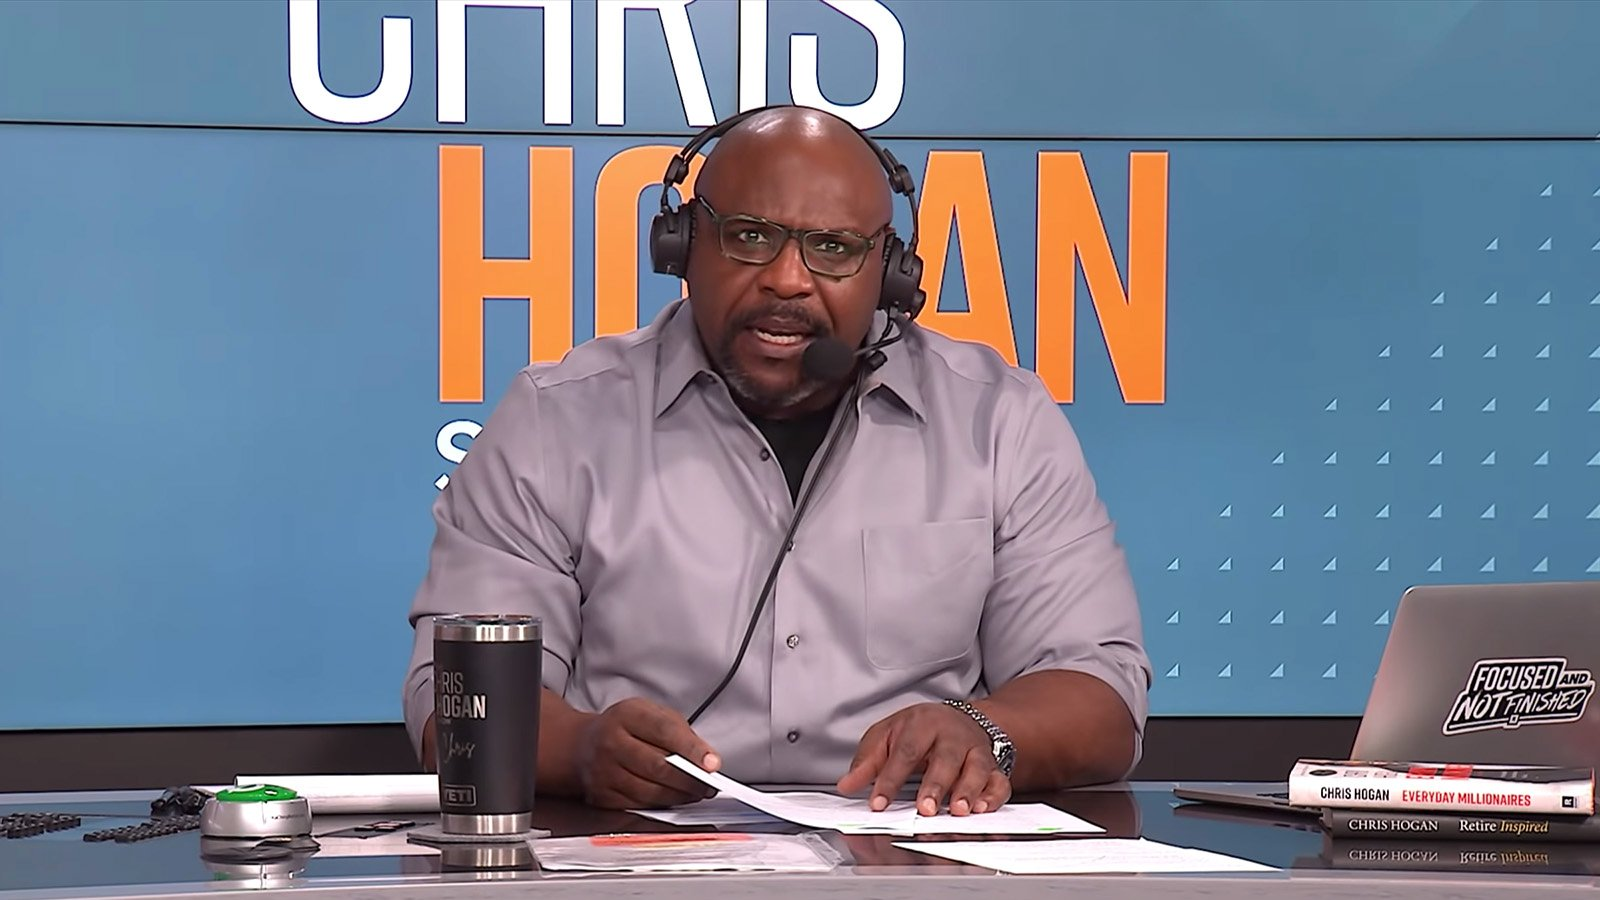 Chris Hogan as host of his own popular show on the Ramsey Solutions platform. Video screengrab